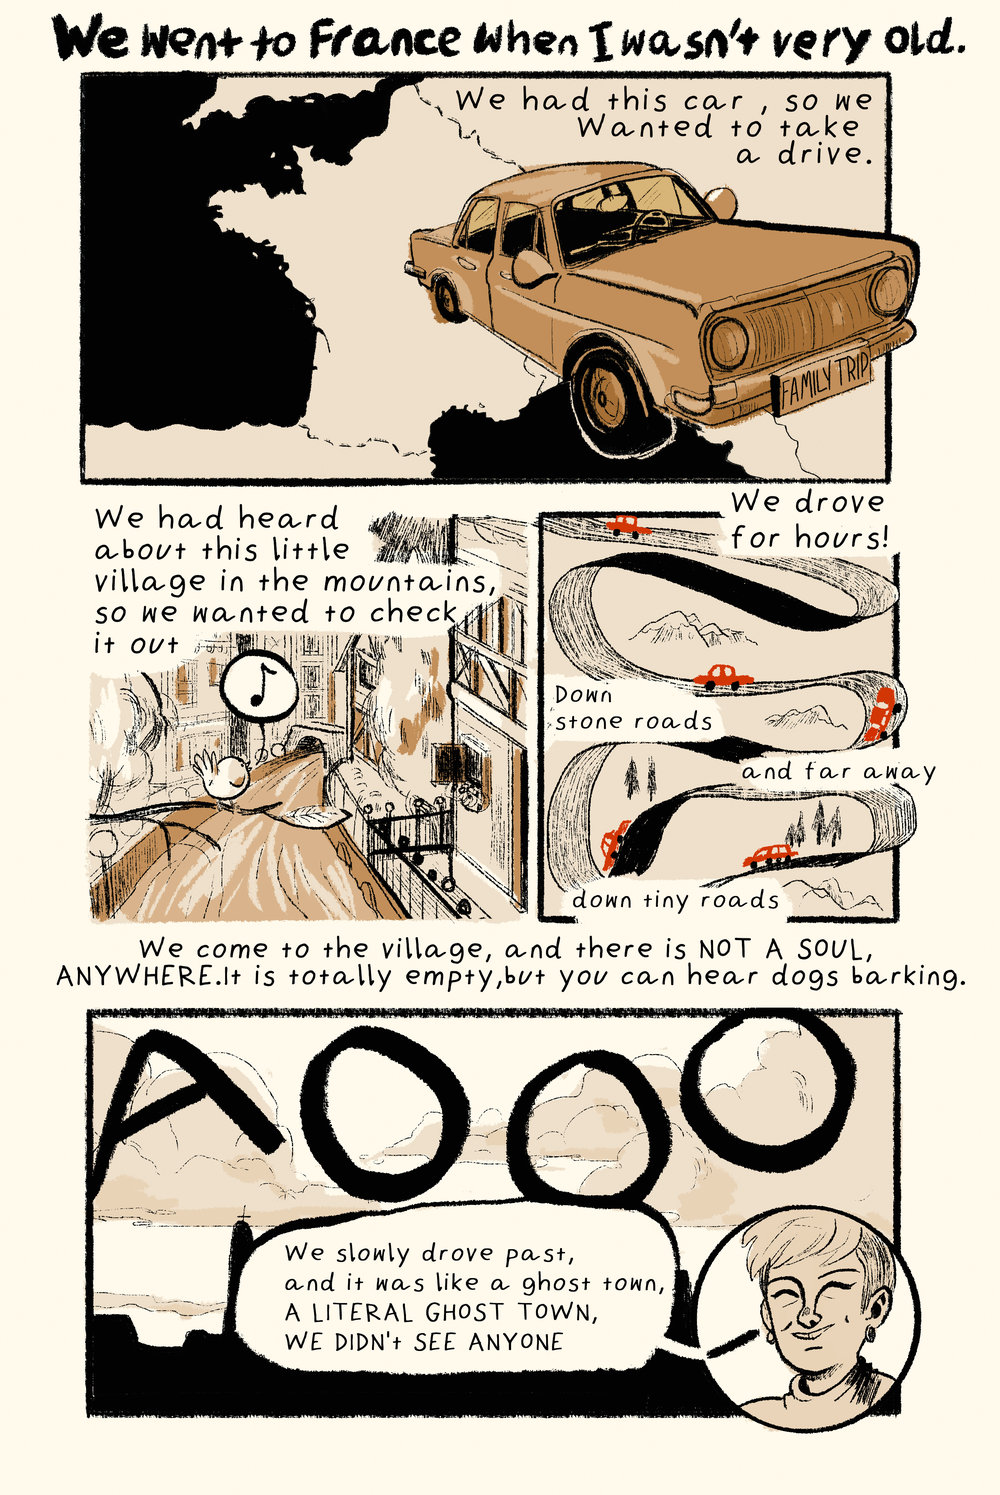 Comic retelling of an interview I took with a Hope Hjort, a classmate of mine.